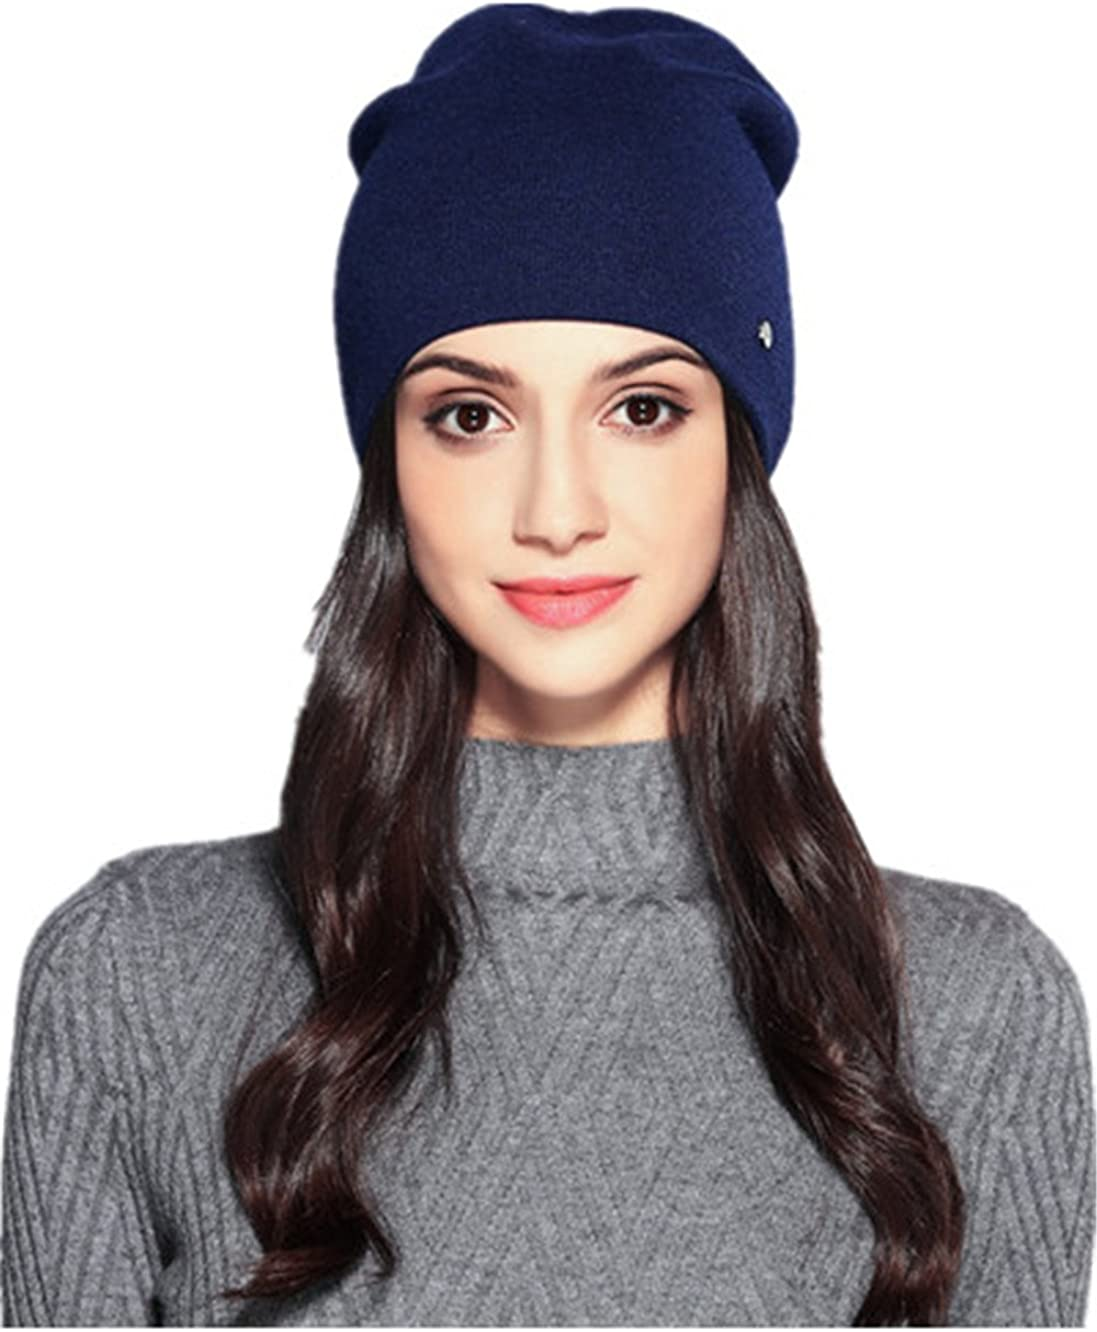 TanQiang Women's Hats Wool Casual Autumn Winter Double Layer Thick Knitted Hats For Girls Skullies Beanie Cap